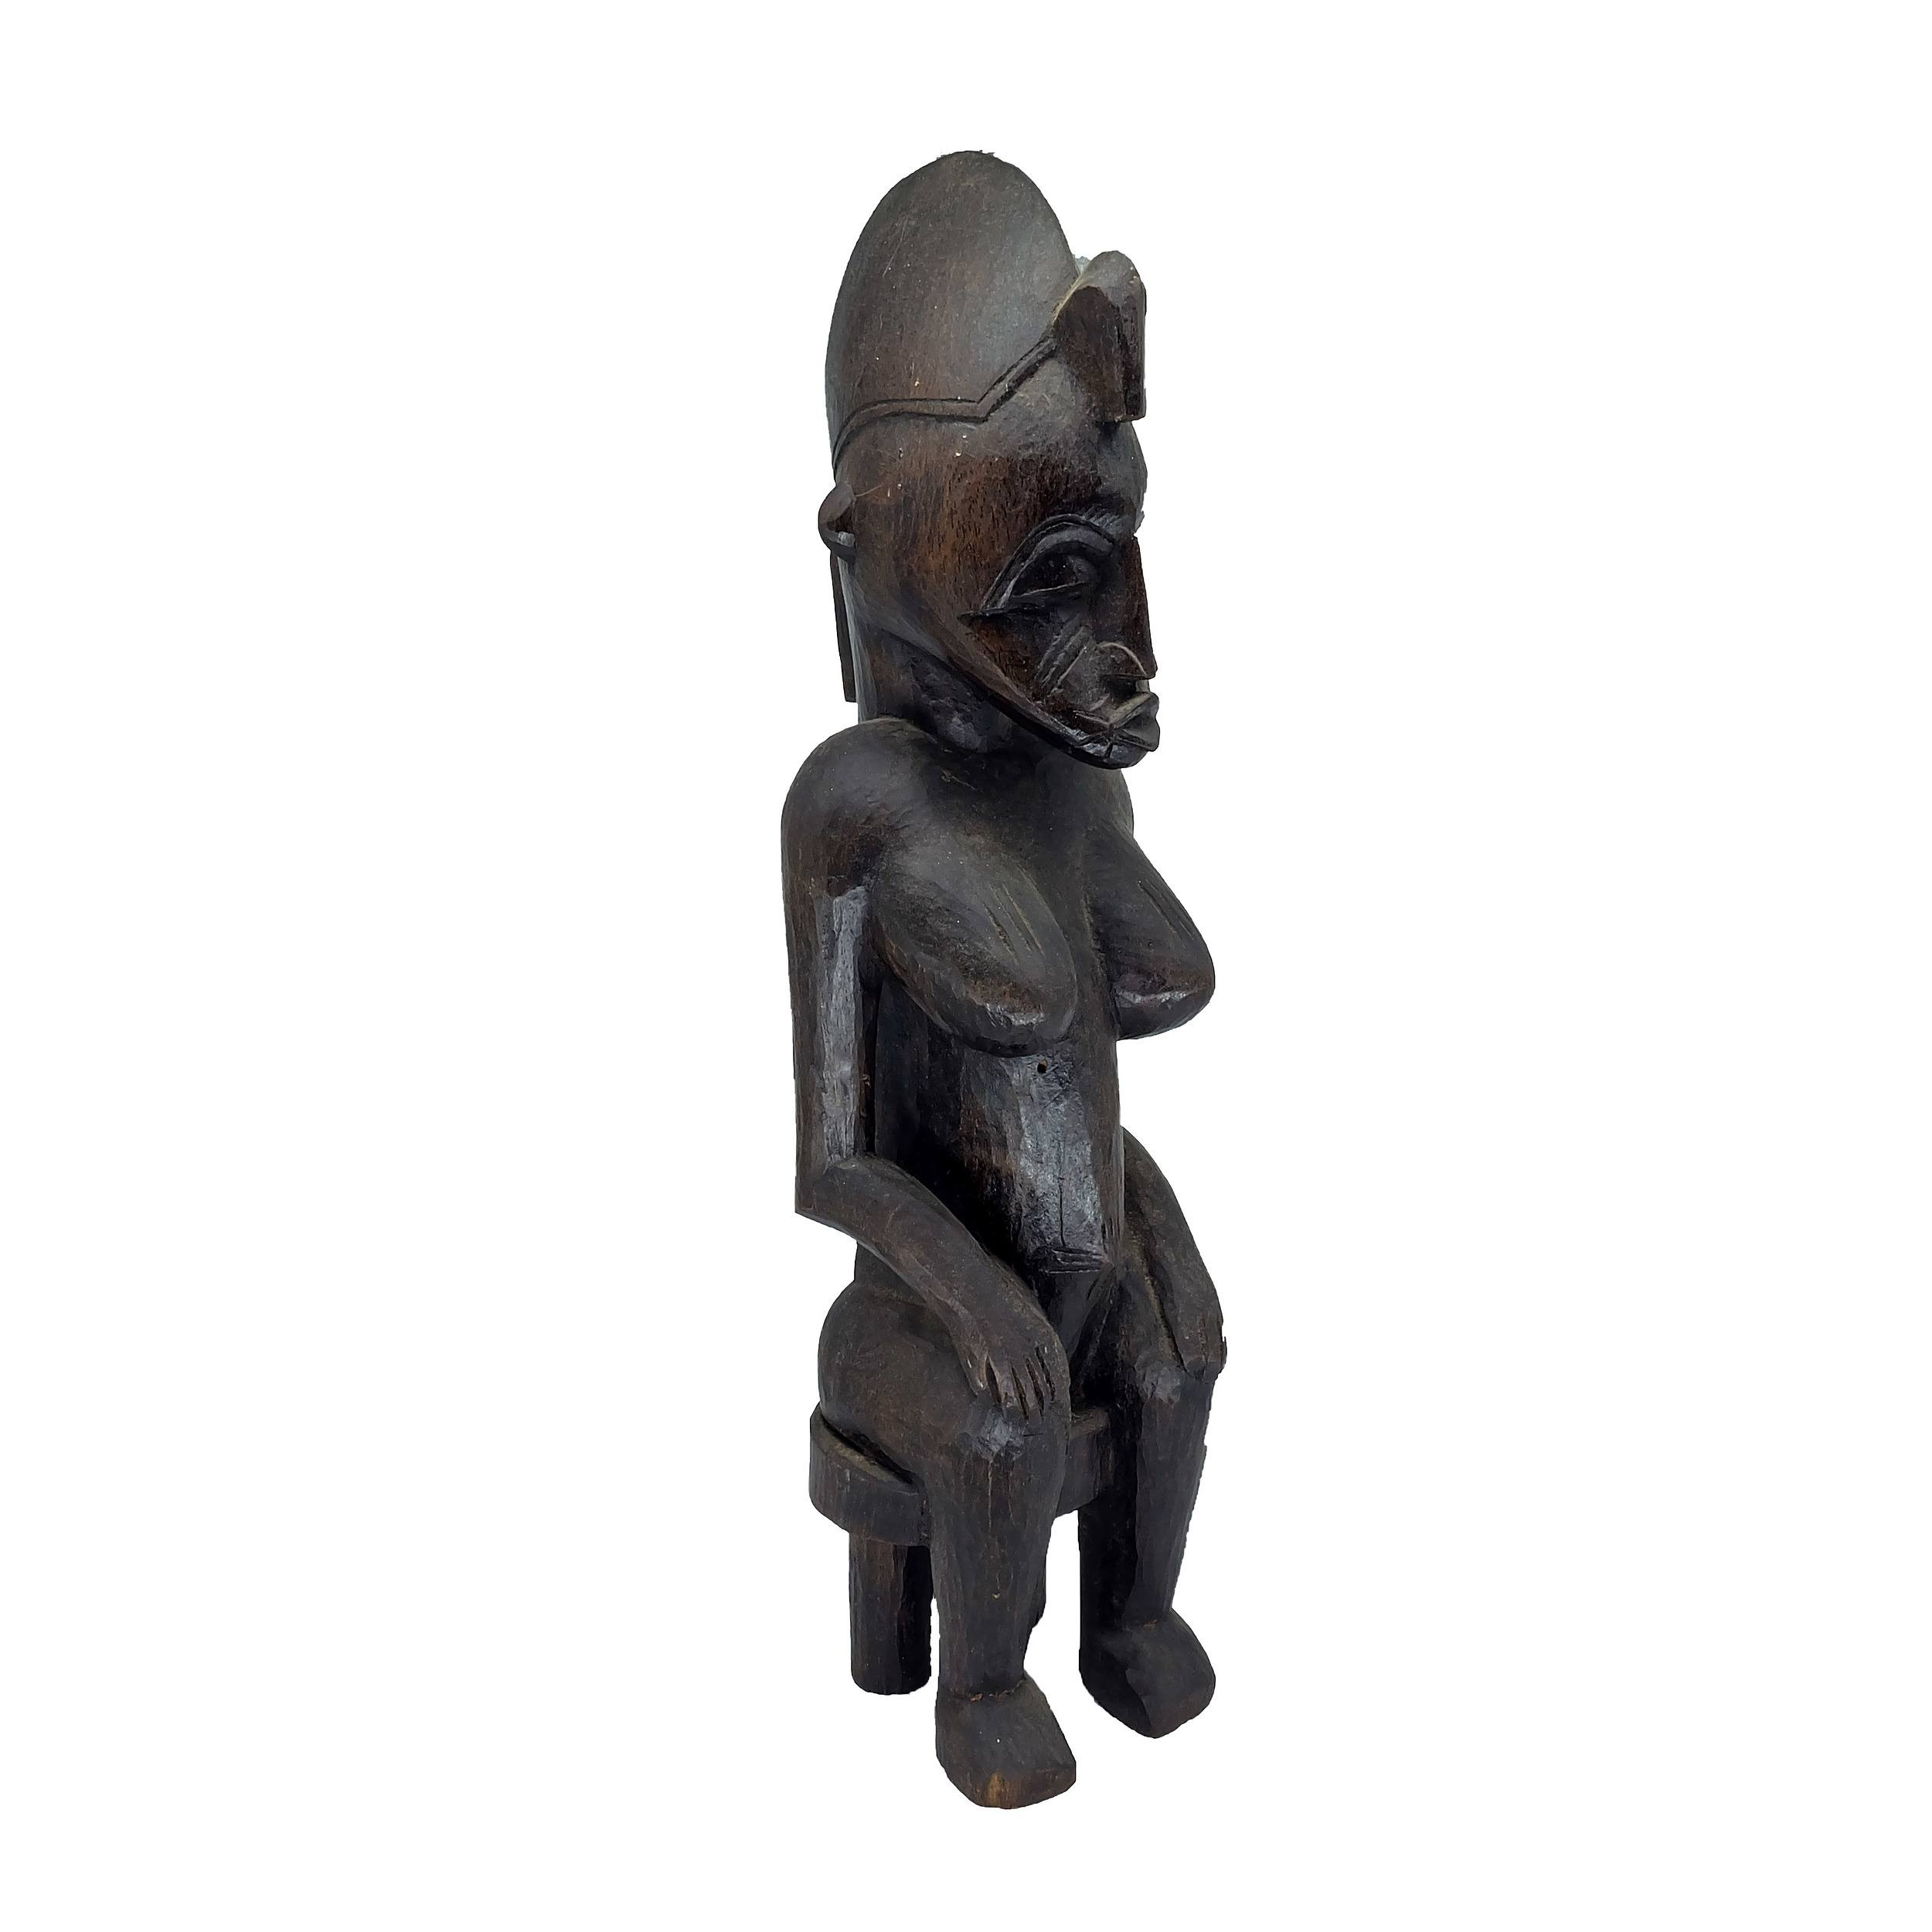 'African Bamana or Senufo Peoples Seated Female Figure, Ivory Coast 20th Century'